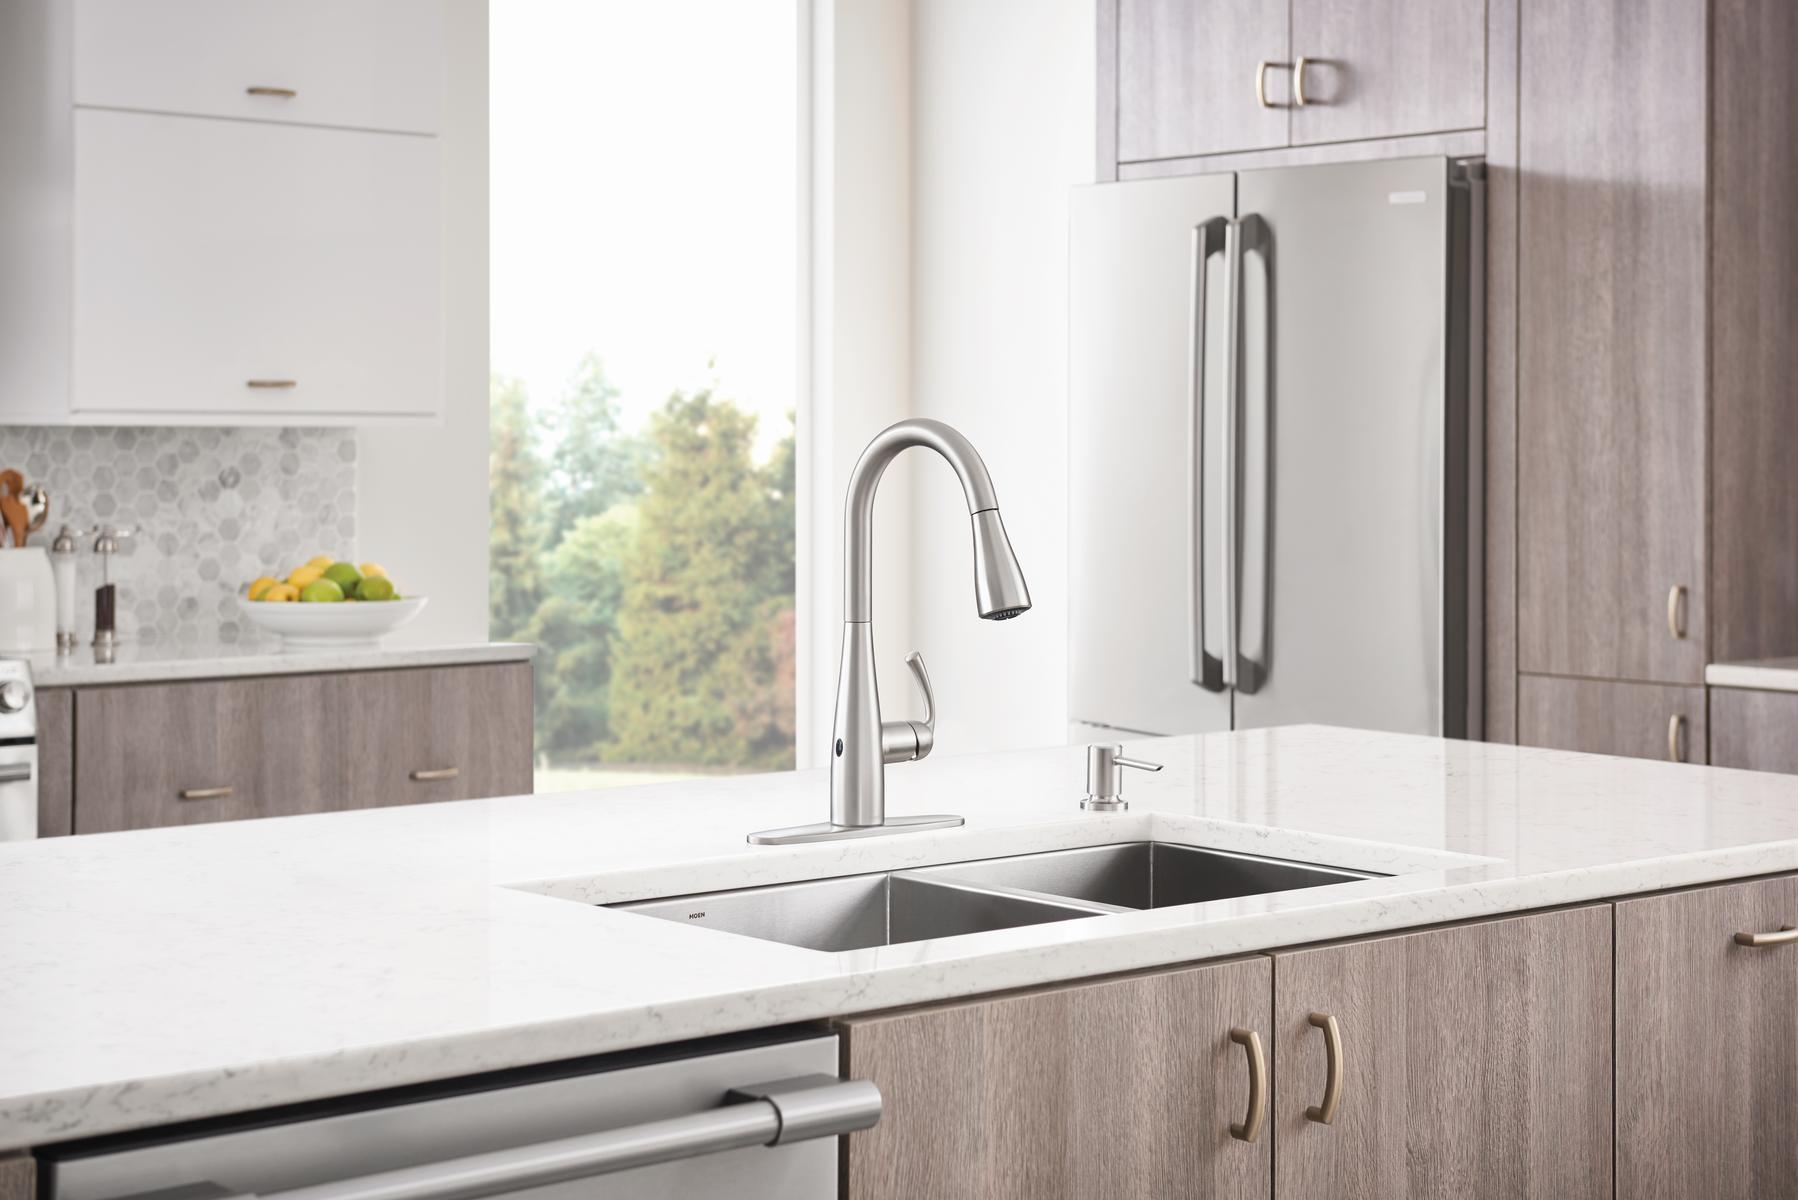 Family Technology Moen MotionSense Wave kitchen faucet